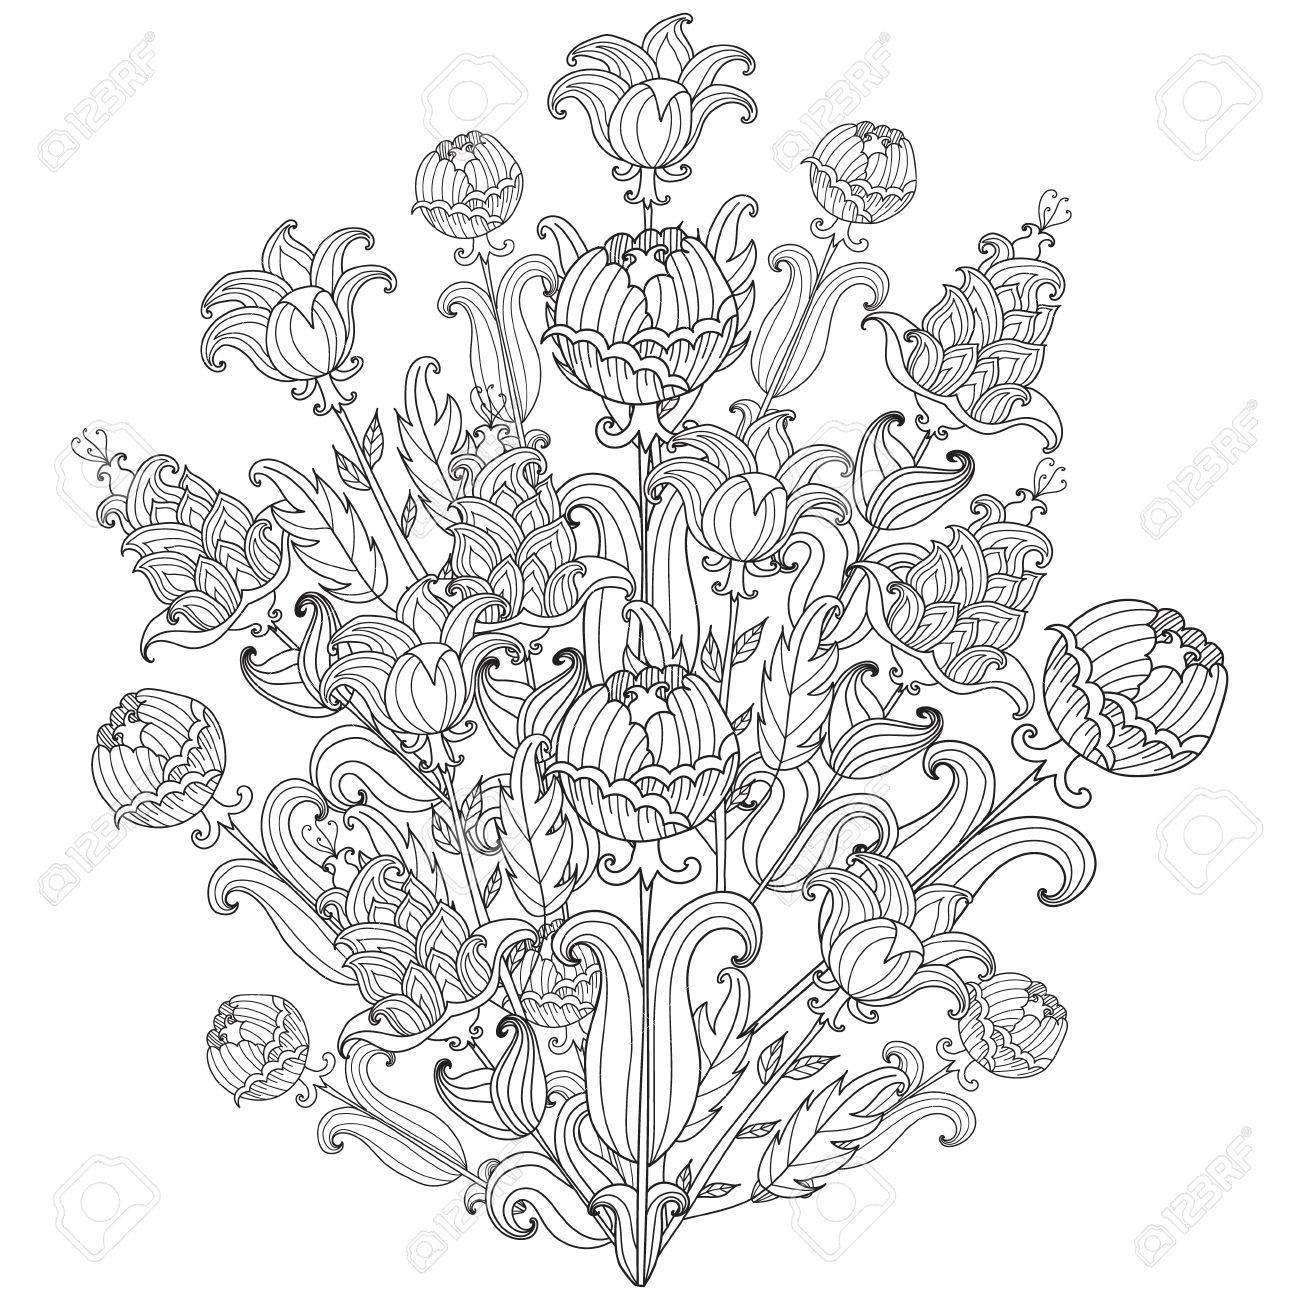 black and white flower template - Vaydile.euforic.co